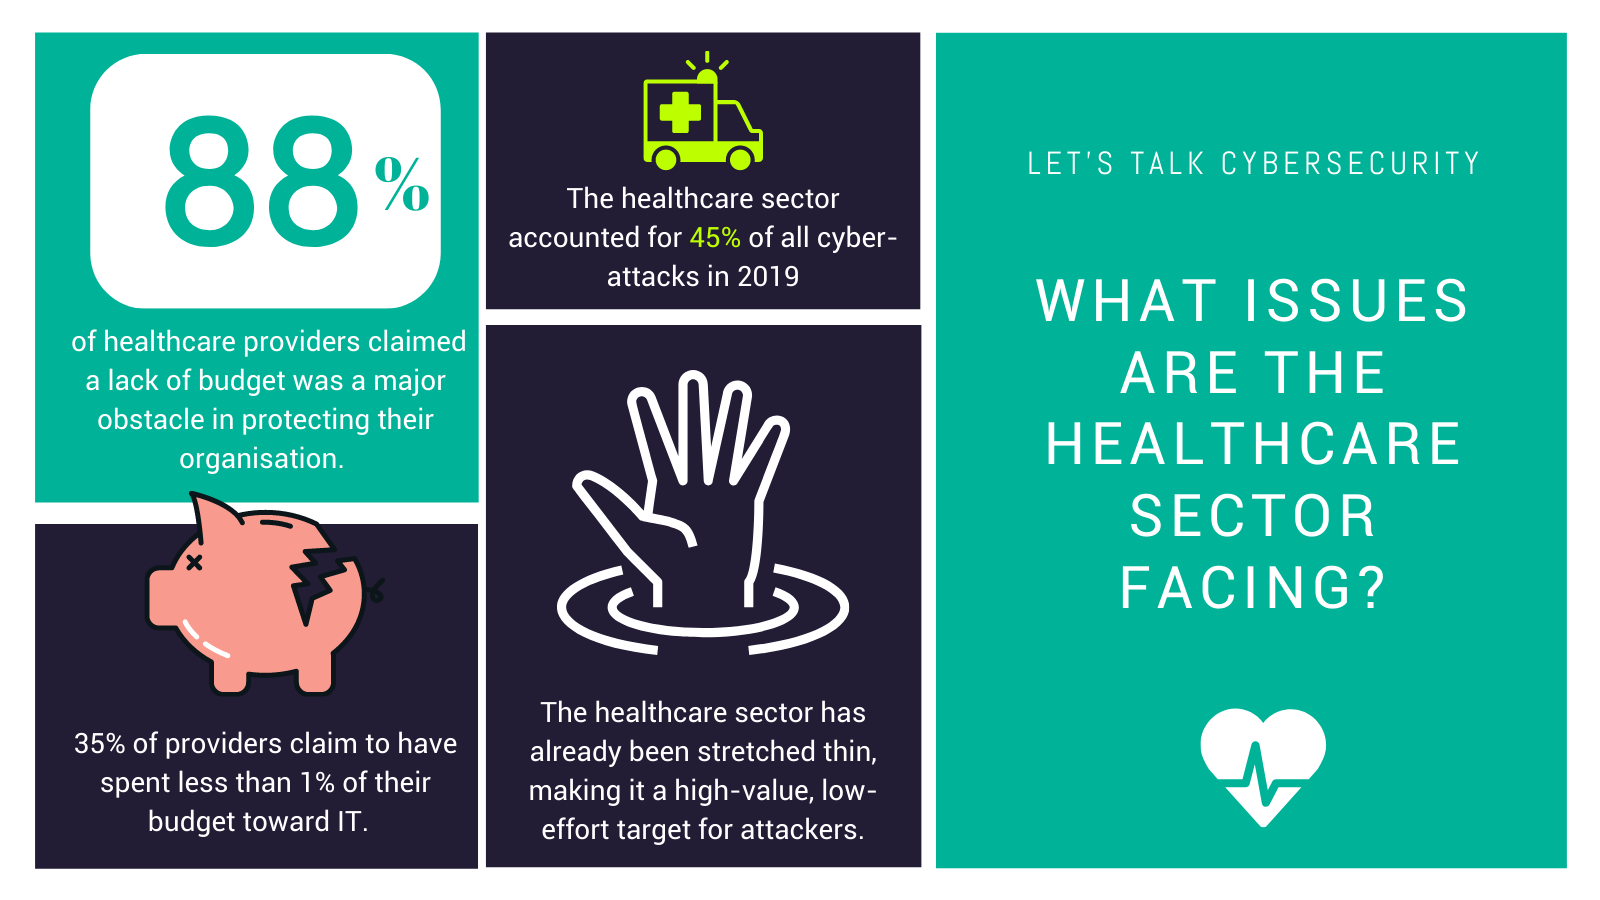 WHat issues are the healthcare sector facing_